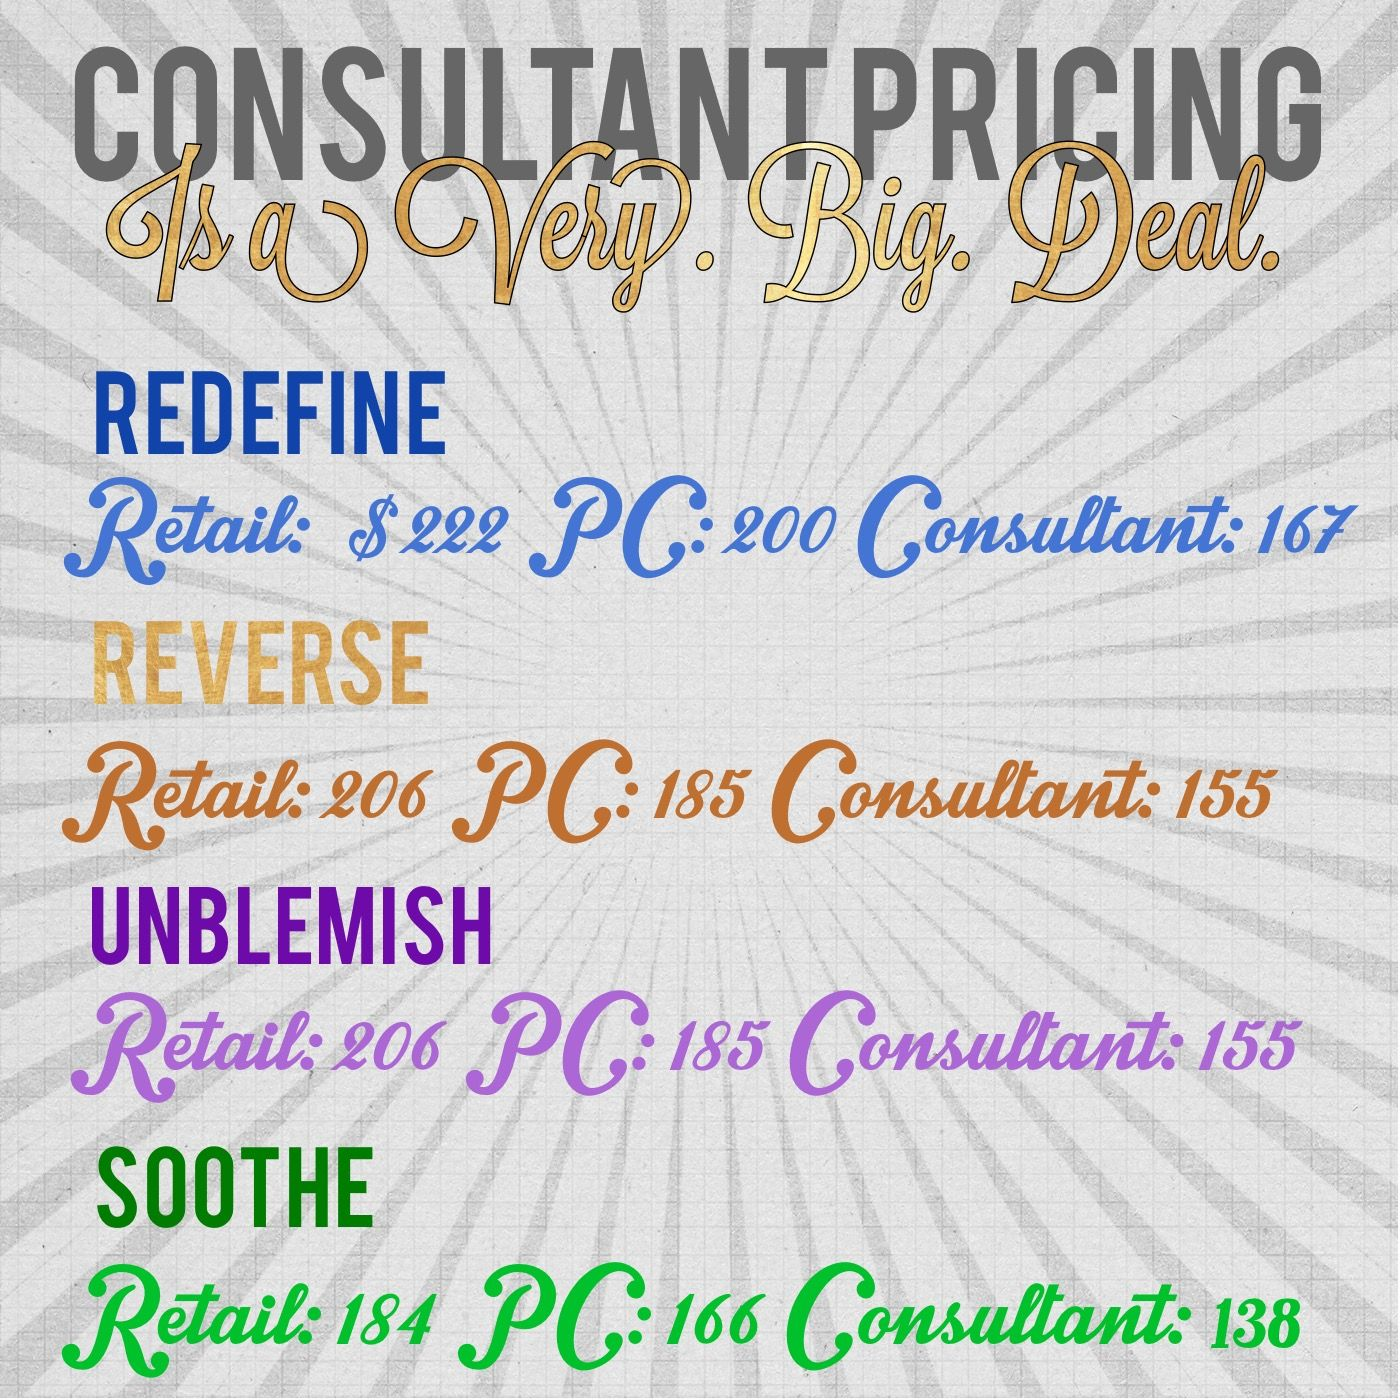 I made this graphic to show Canadian Rodan + Fields pricing ...